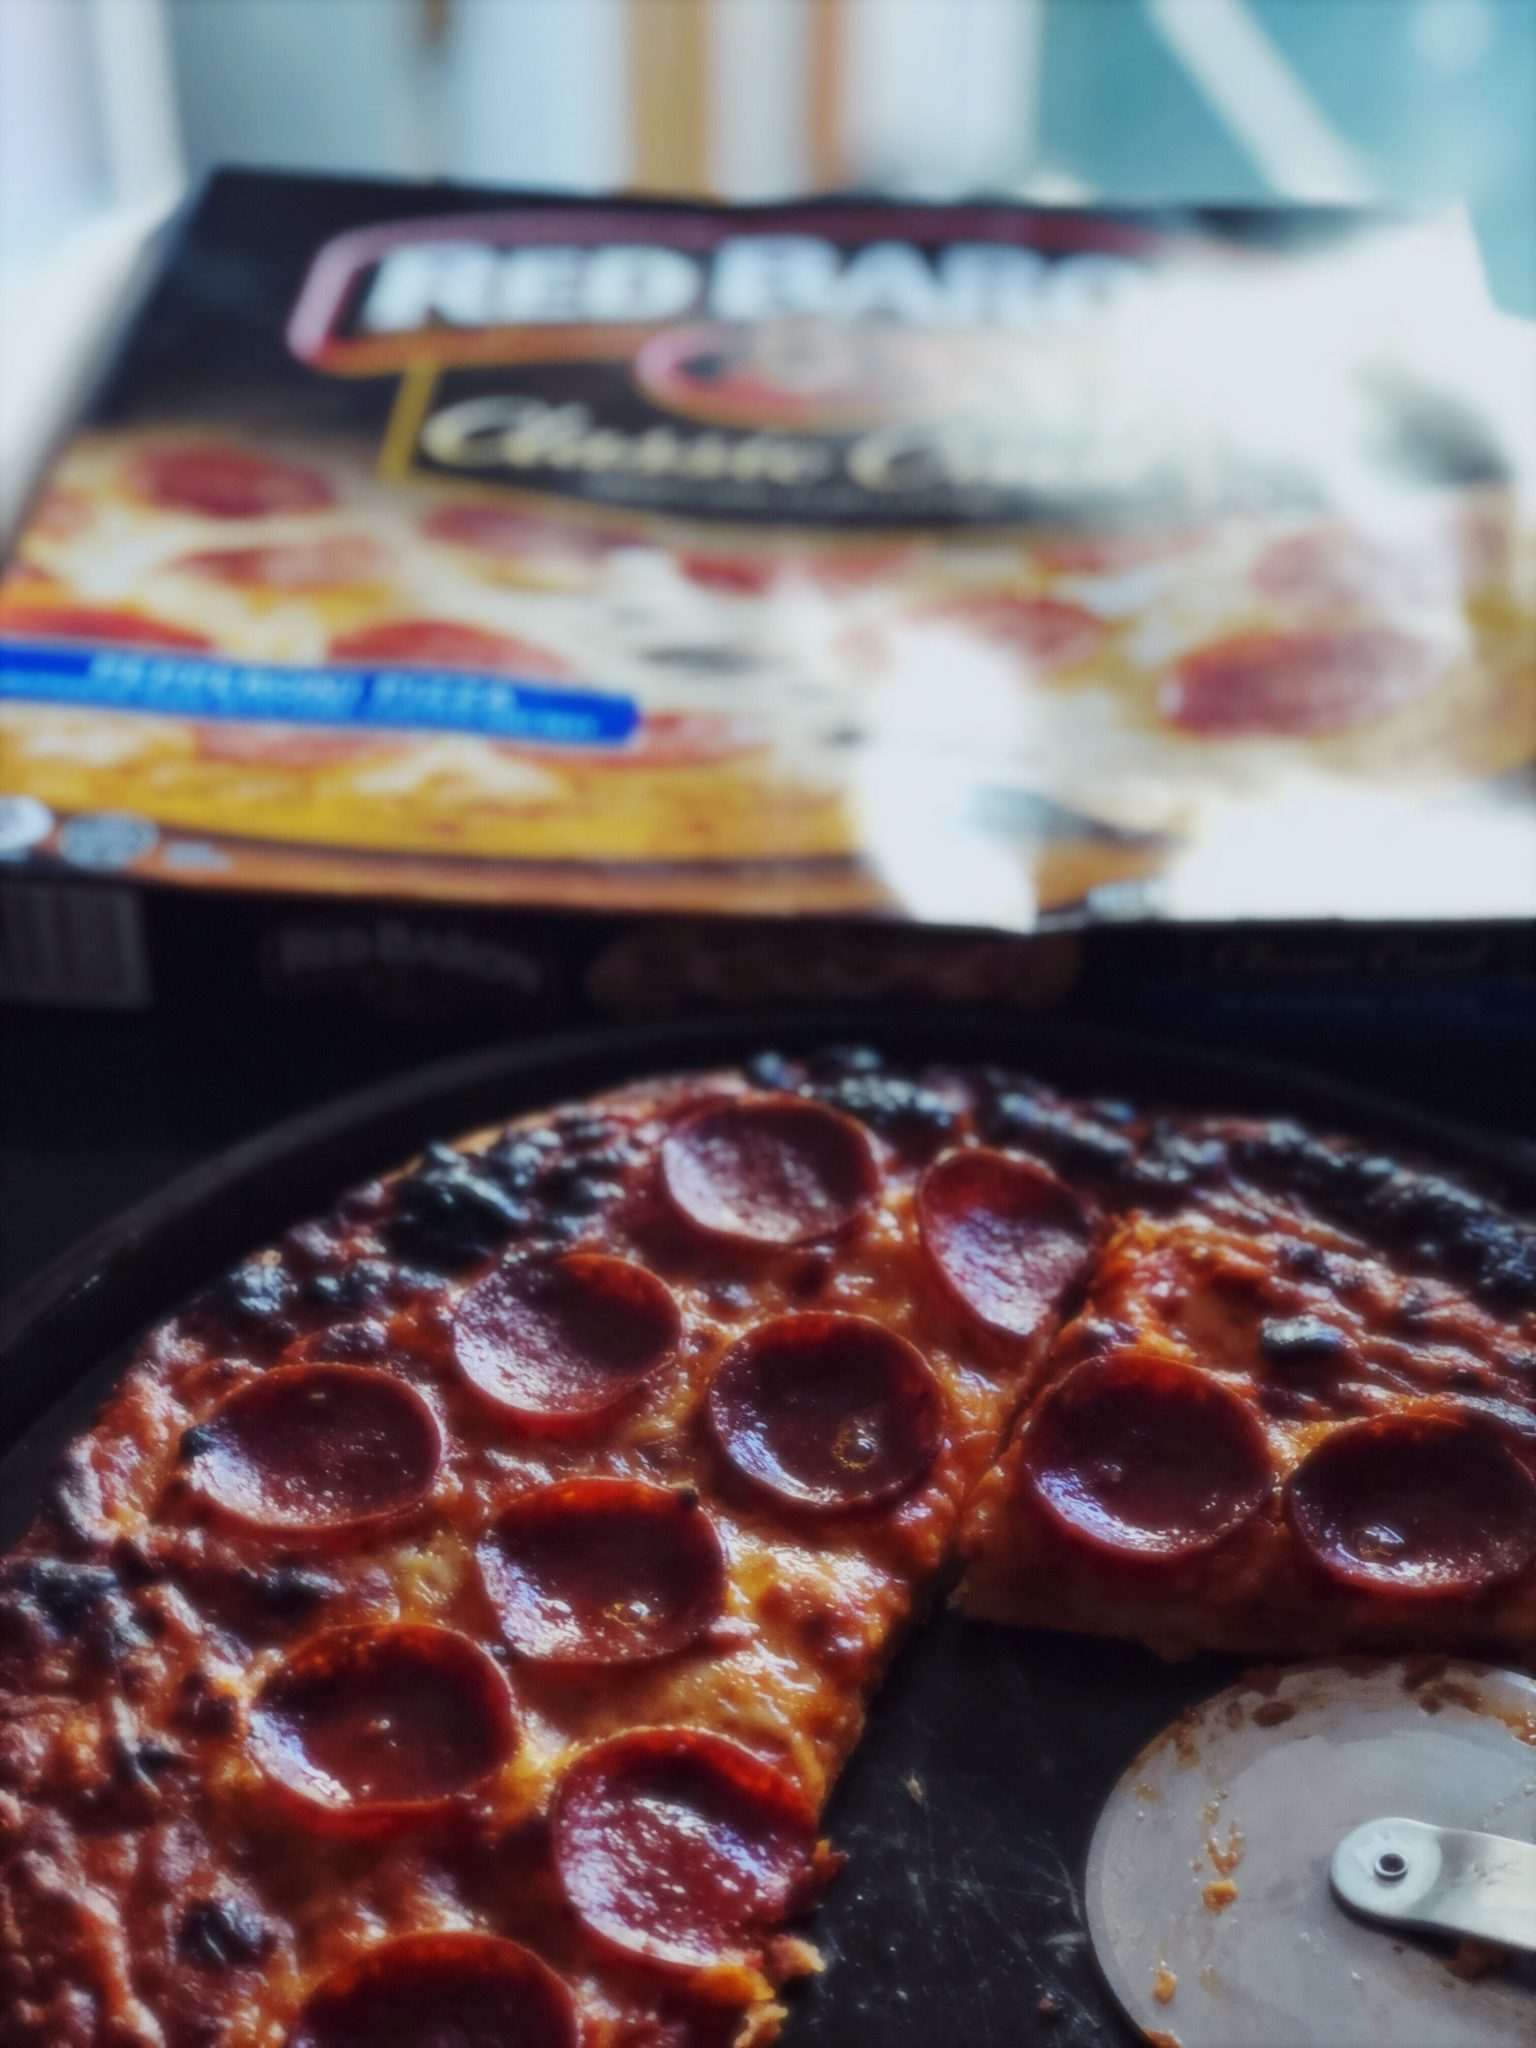 Red Baron Lunchtime Pizza